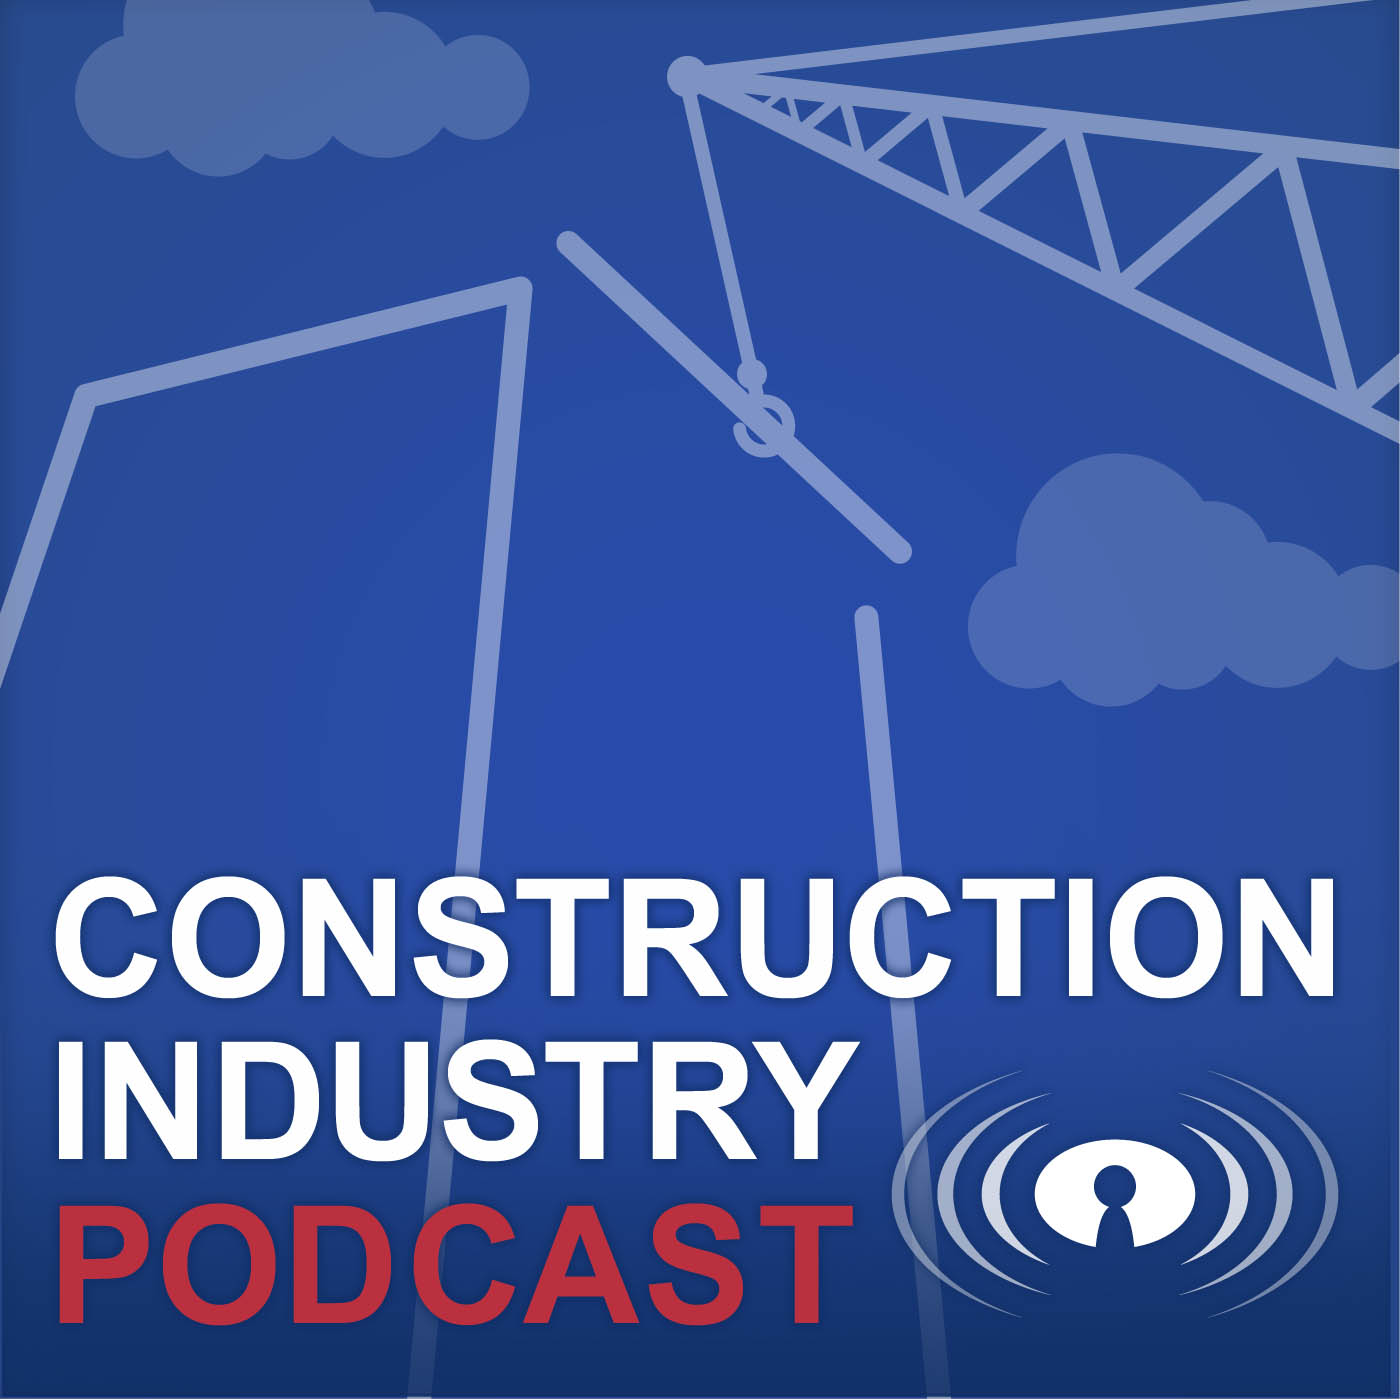 Construction Industry Podcast With Cesar Abeid By Remontech Inc On Le Podcasts